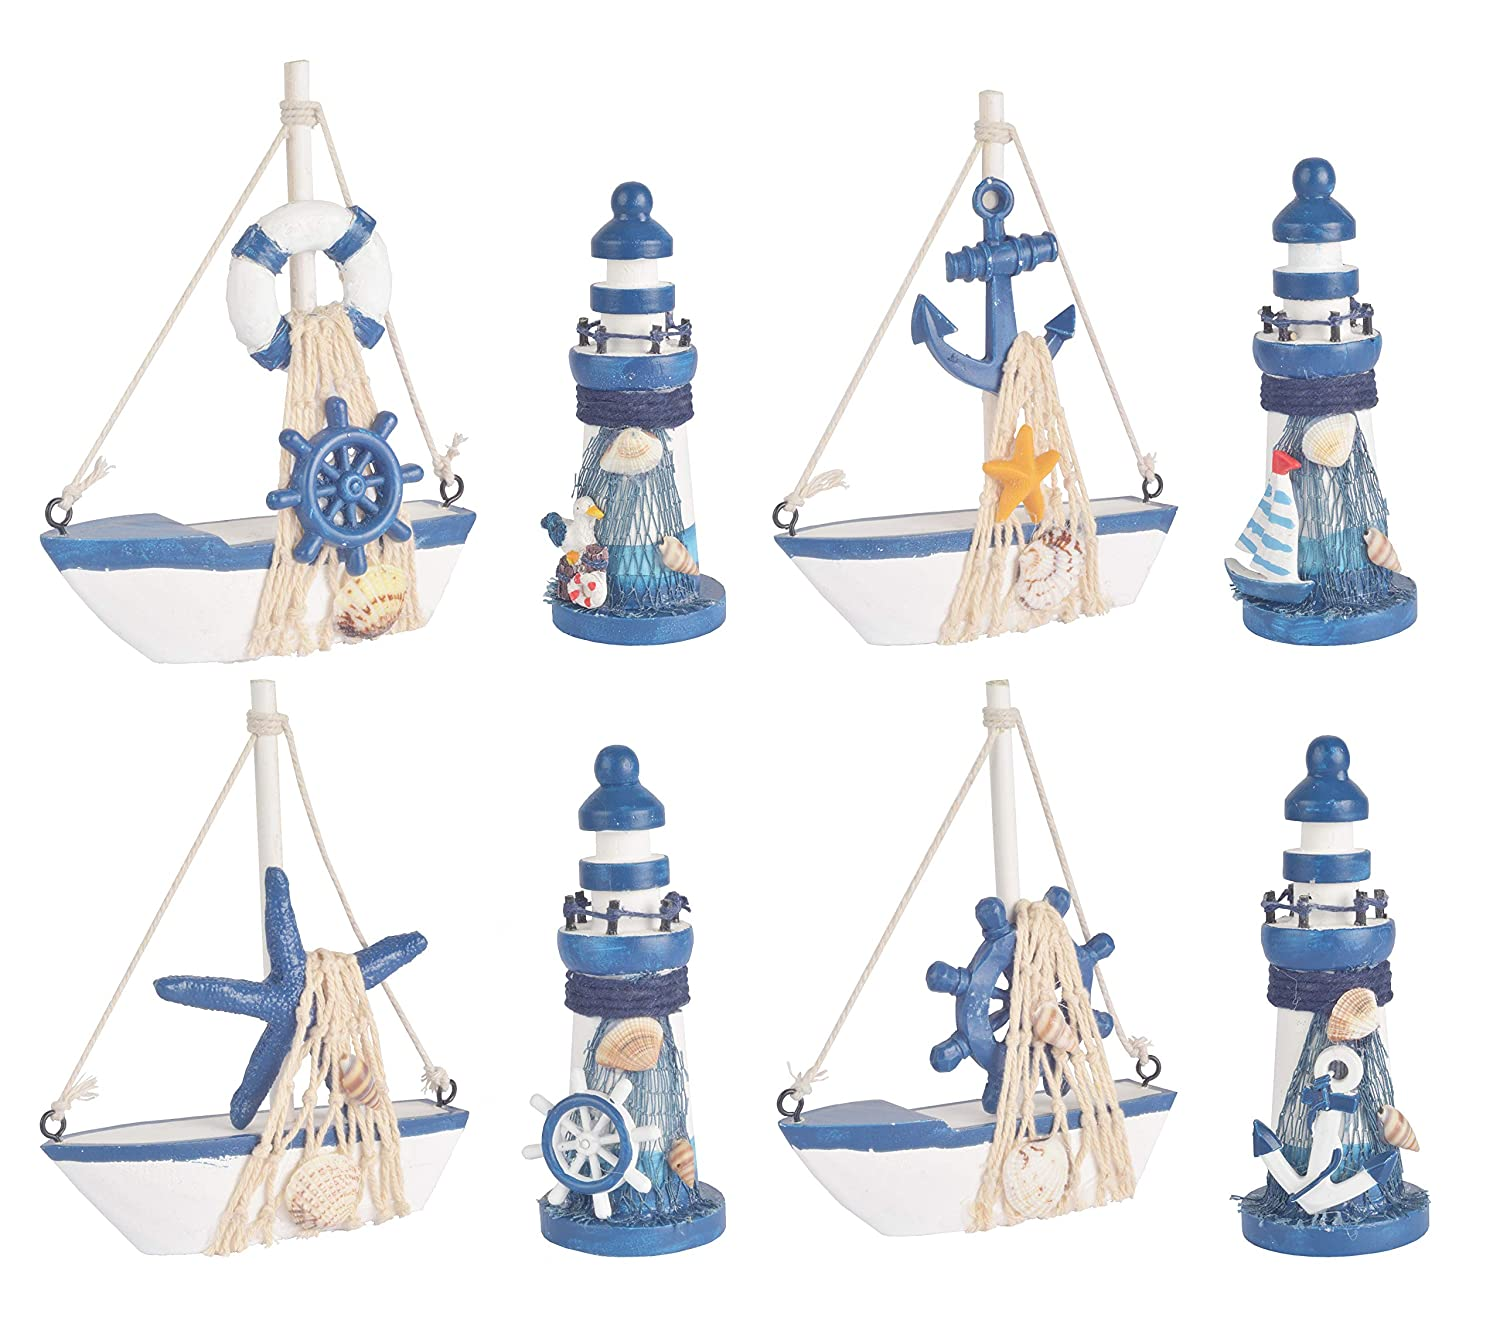 Wooden Lighthouse and Mini Sailboat Model Decoration, Set of 8 Different Design Wooden Decorative Sailboats & Light House, Handmade Nautical Lighthouse Decorations, Mini Sailing Boat Nautical Decorati